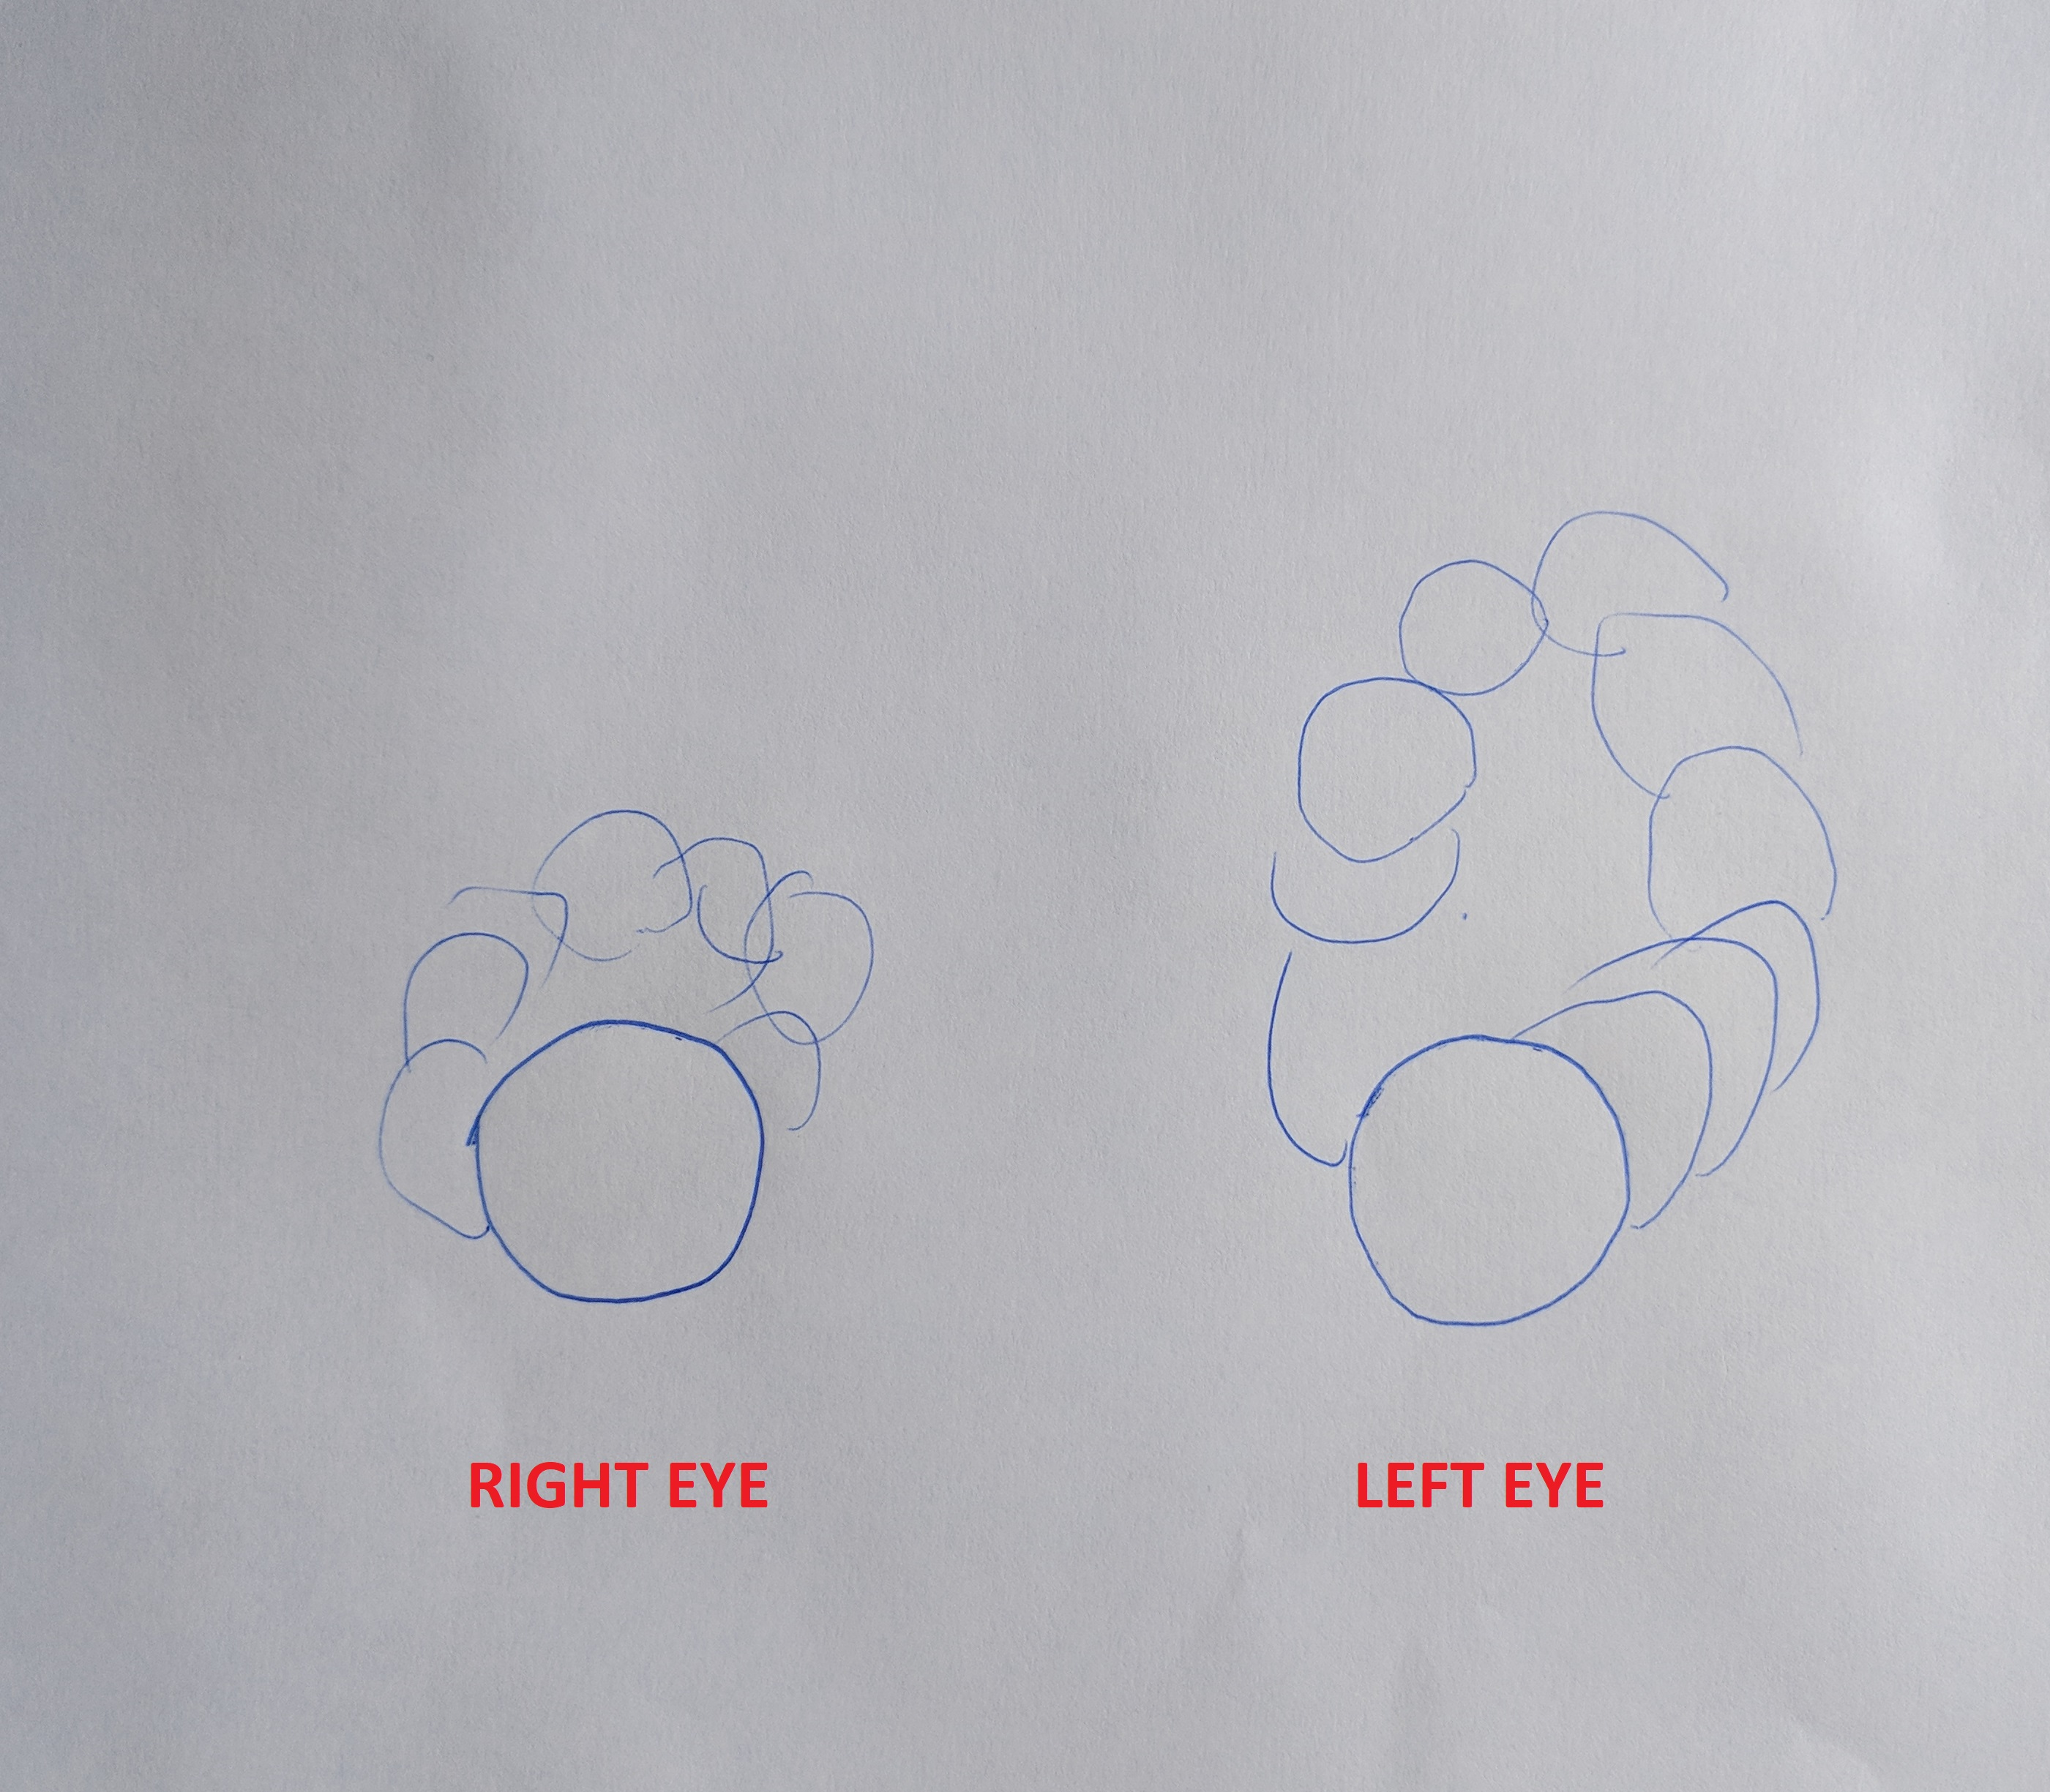 drawing of the visual symptoms of a patient with keratoconus